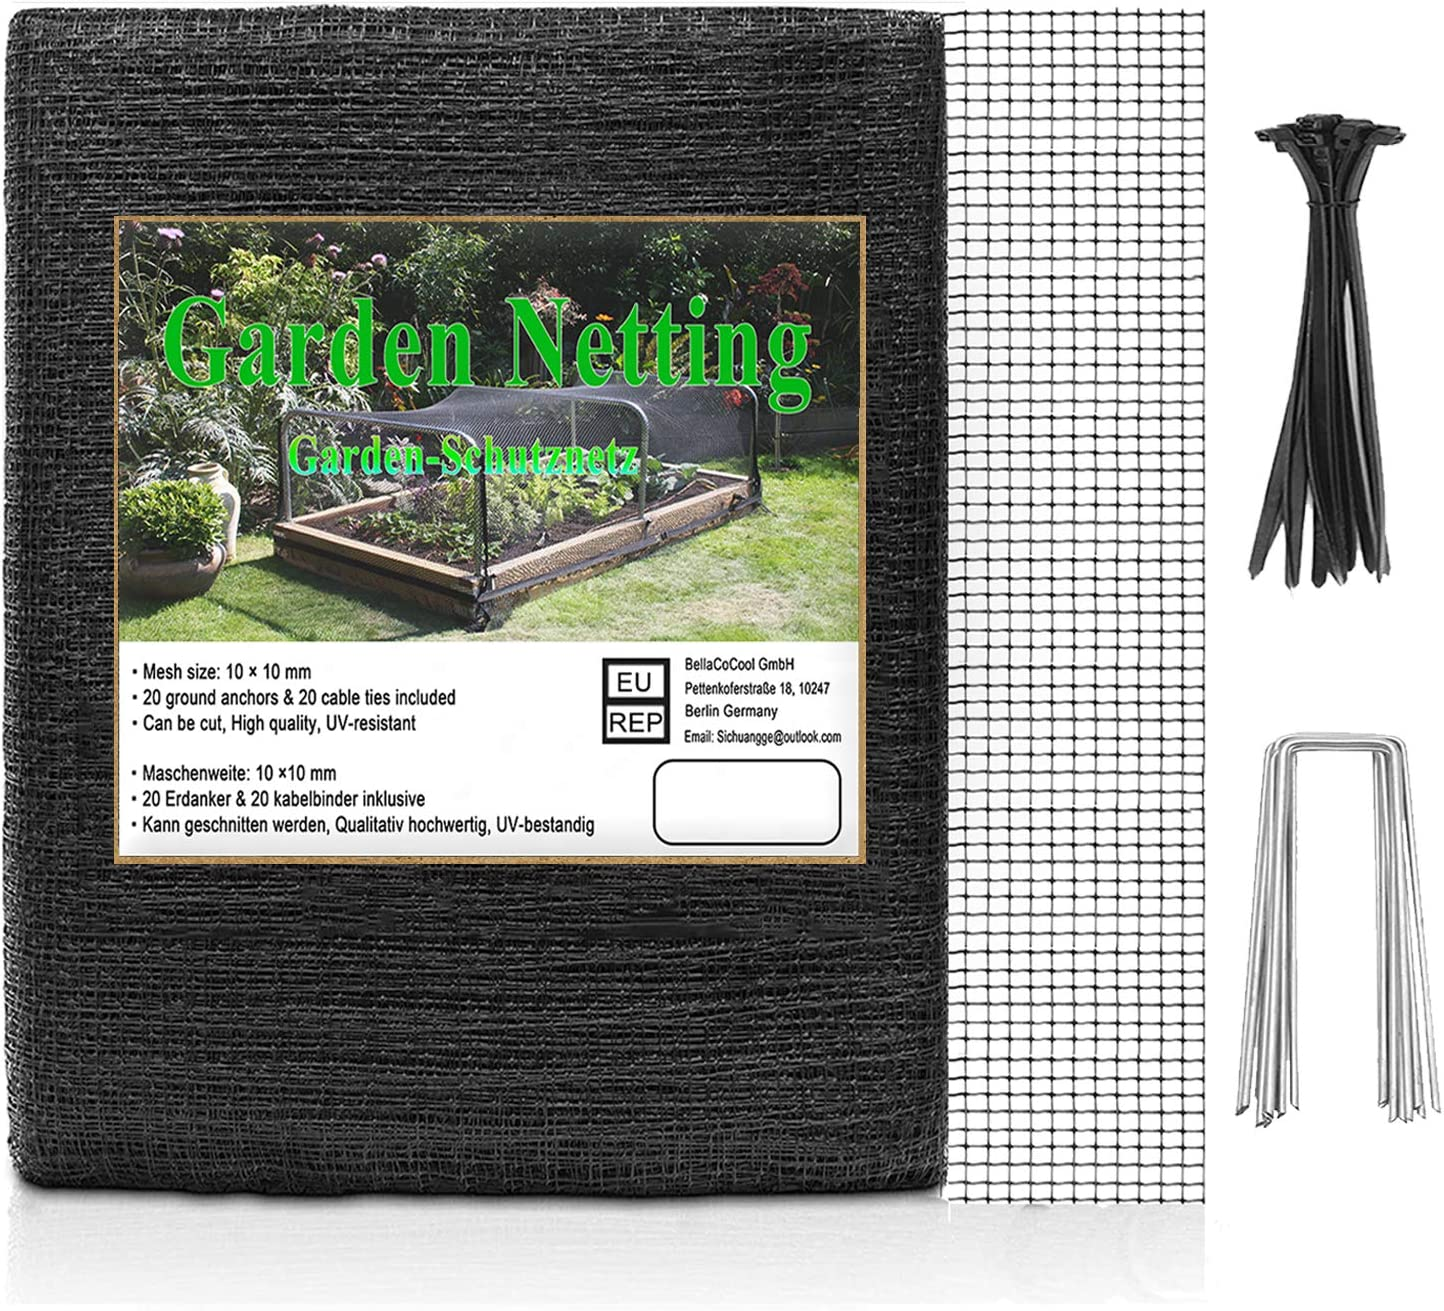 Bird Netting 65 x 7.5ft Deer Fence Netting, Chicken Netting, Reusable Extra Strong Plastic Garden Netting, Protect Plants and Fruit Trees, Lasting Against Squirrel, Eagle, Skunk, Raccoon, Deer, Birds